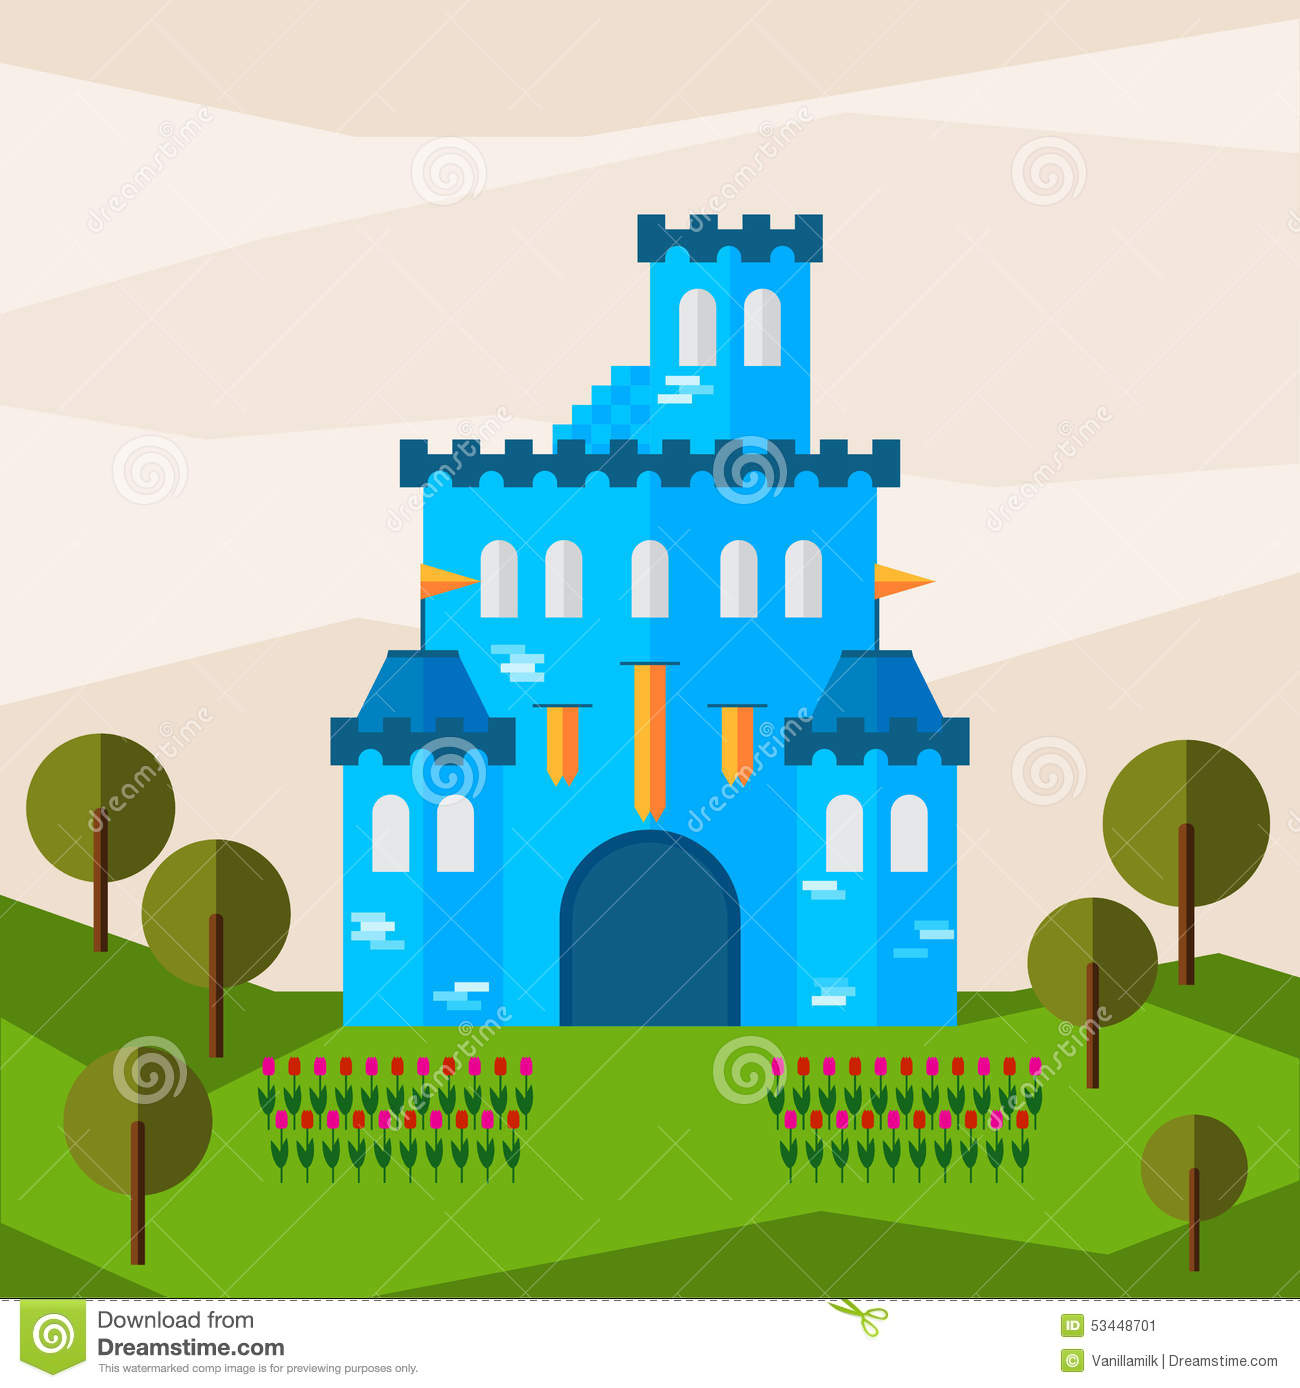 Bright Graphic Illustration With Cartoon Blue Colored